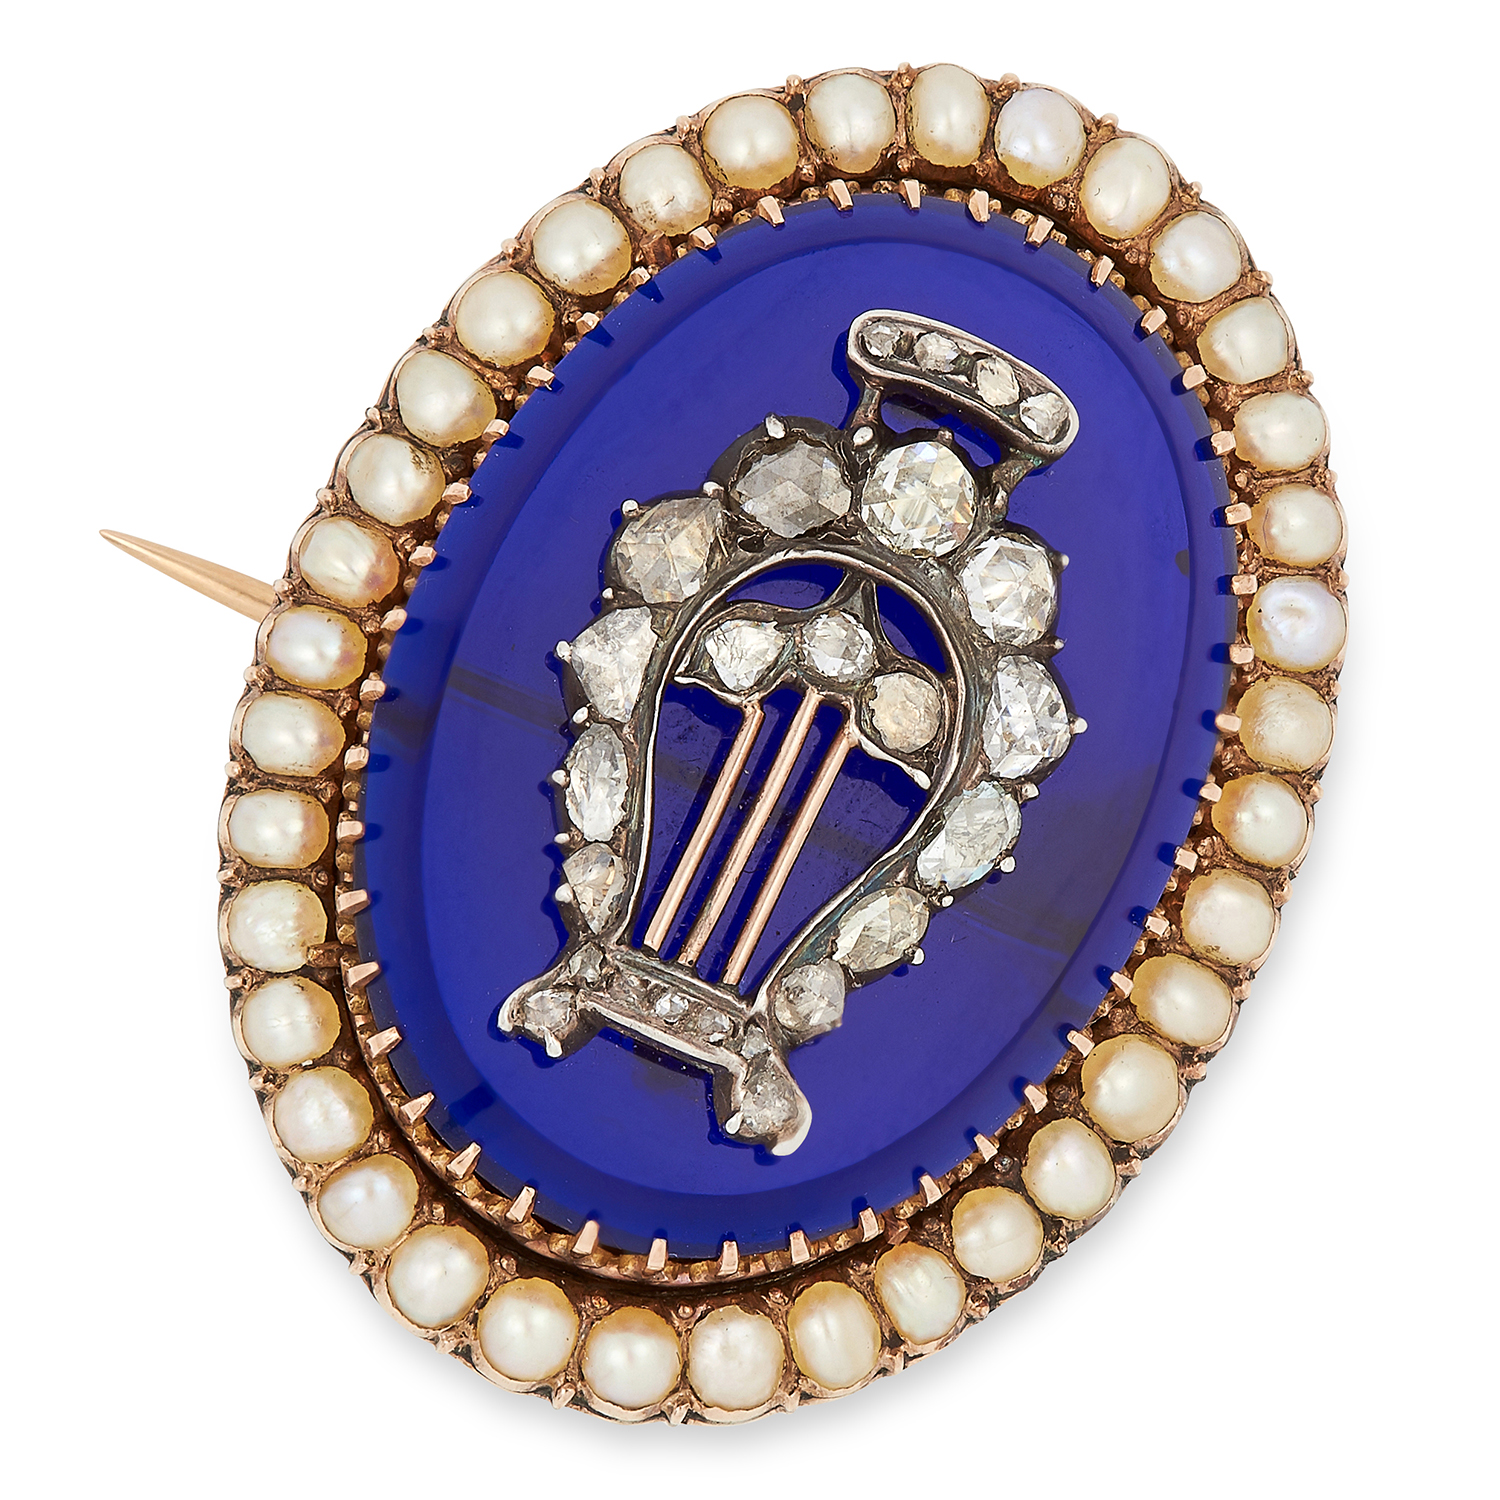 ANTIQUE VICTORIAN PEARL, DIAMOND AND BLUE HARDSTONE BROOCH set with rose cut diamonds in harp